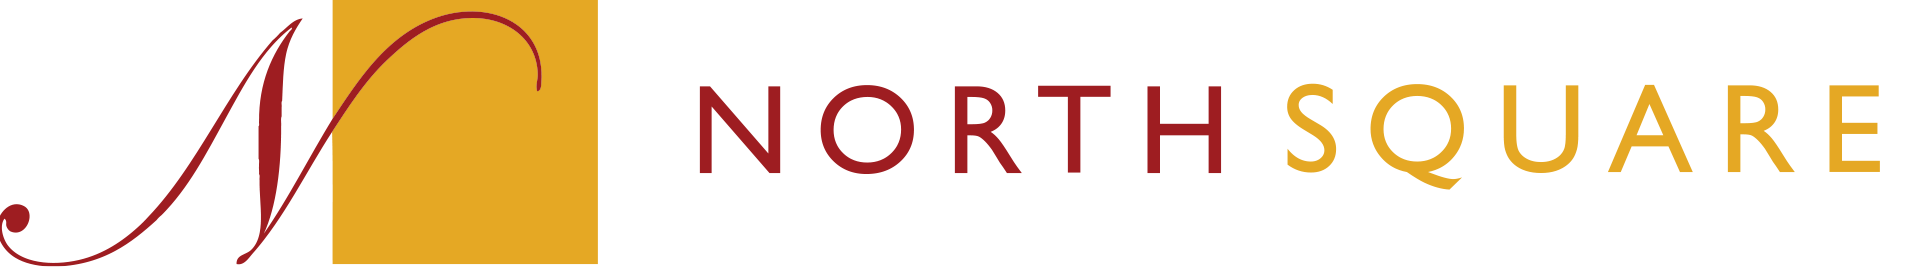 North Square Restaurant Logo